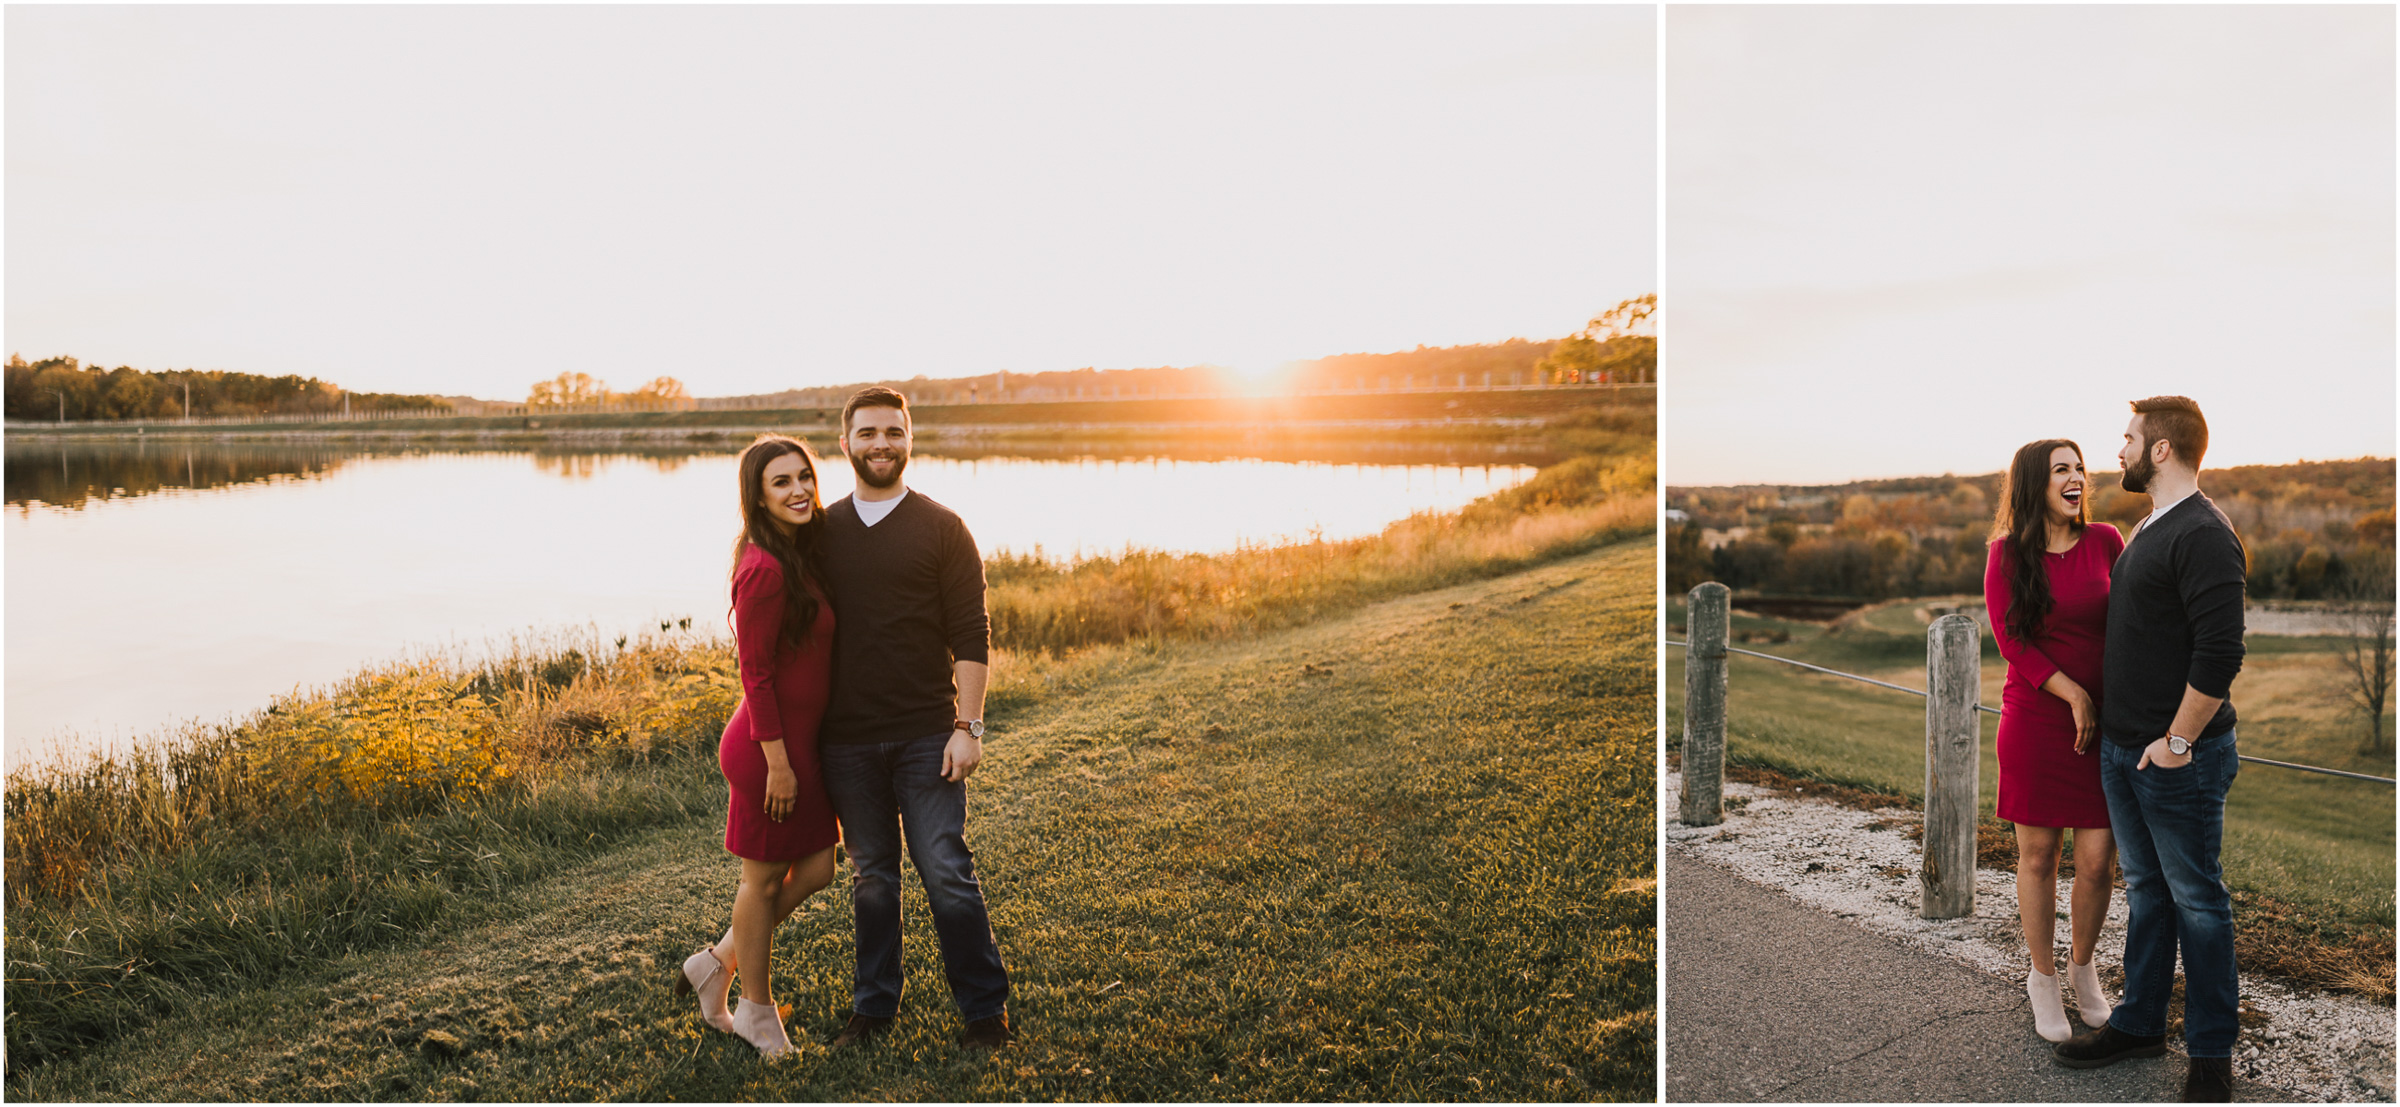 alyssa barletter photography shawnee mission park fall engagement photographer a girl her life blogger sunset photos-26.jpg